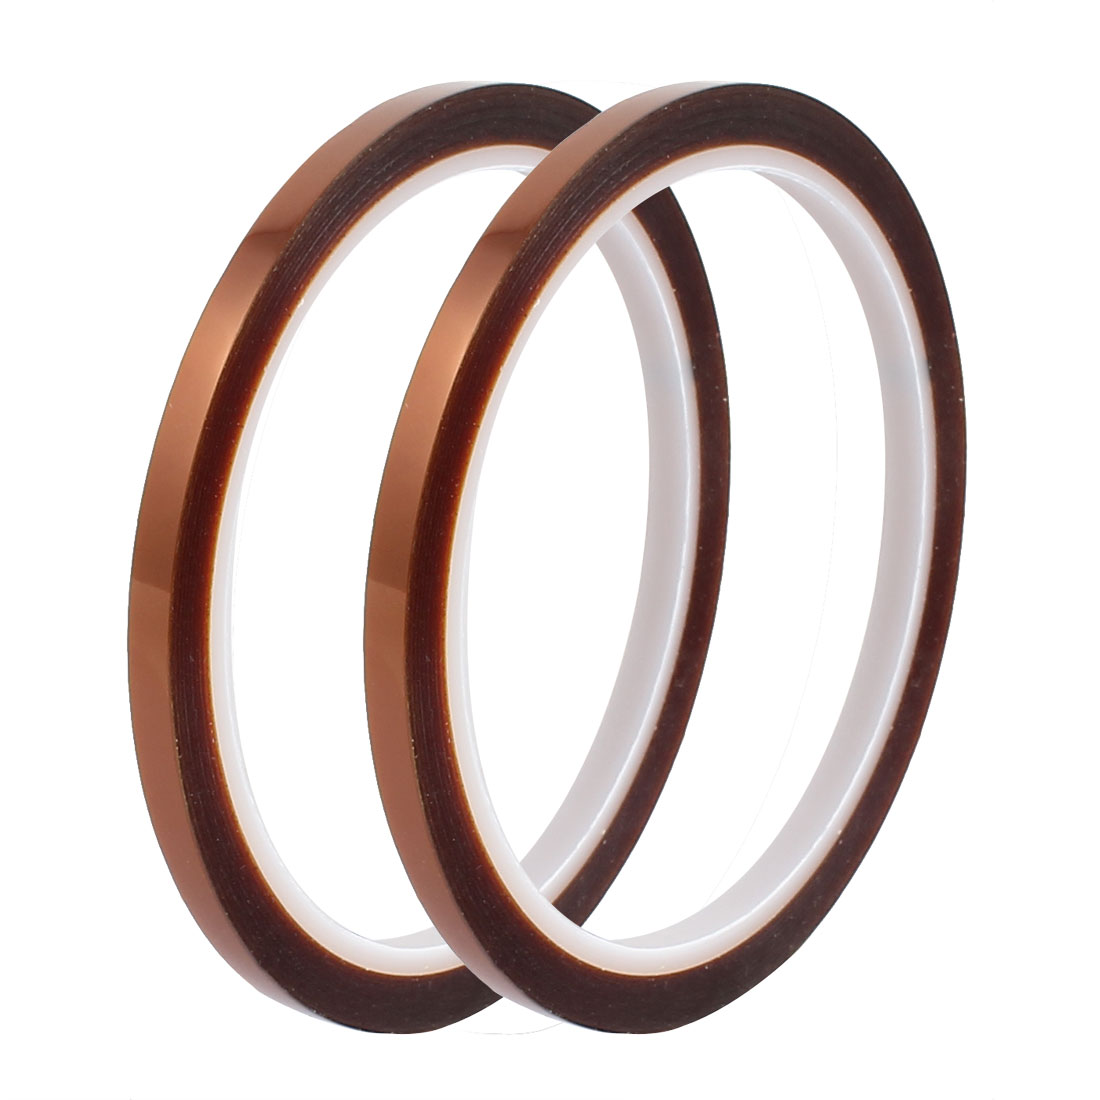 2 Pcs 5mm Width 33M Length High Temp Heat Resistant Polyimide Tape Brown